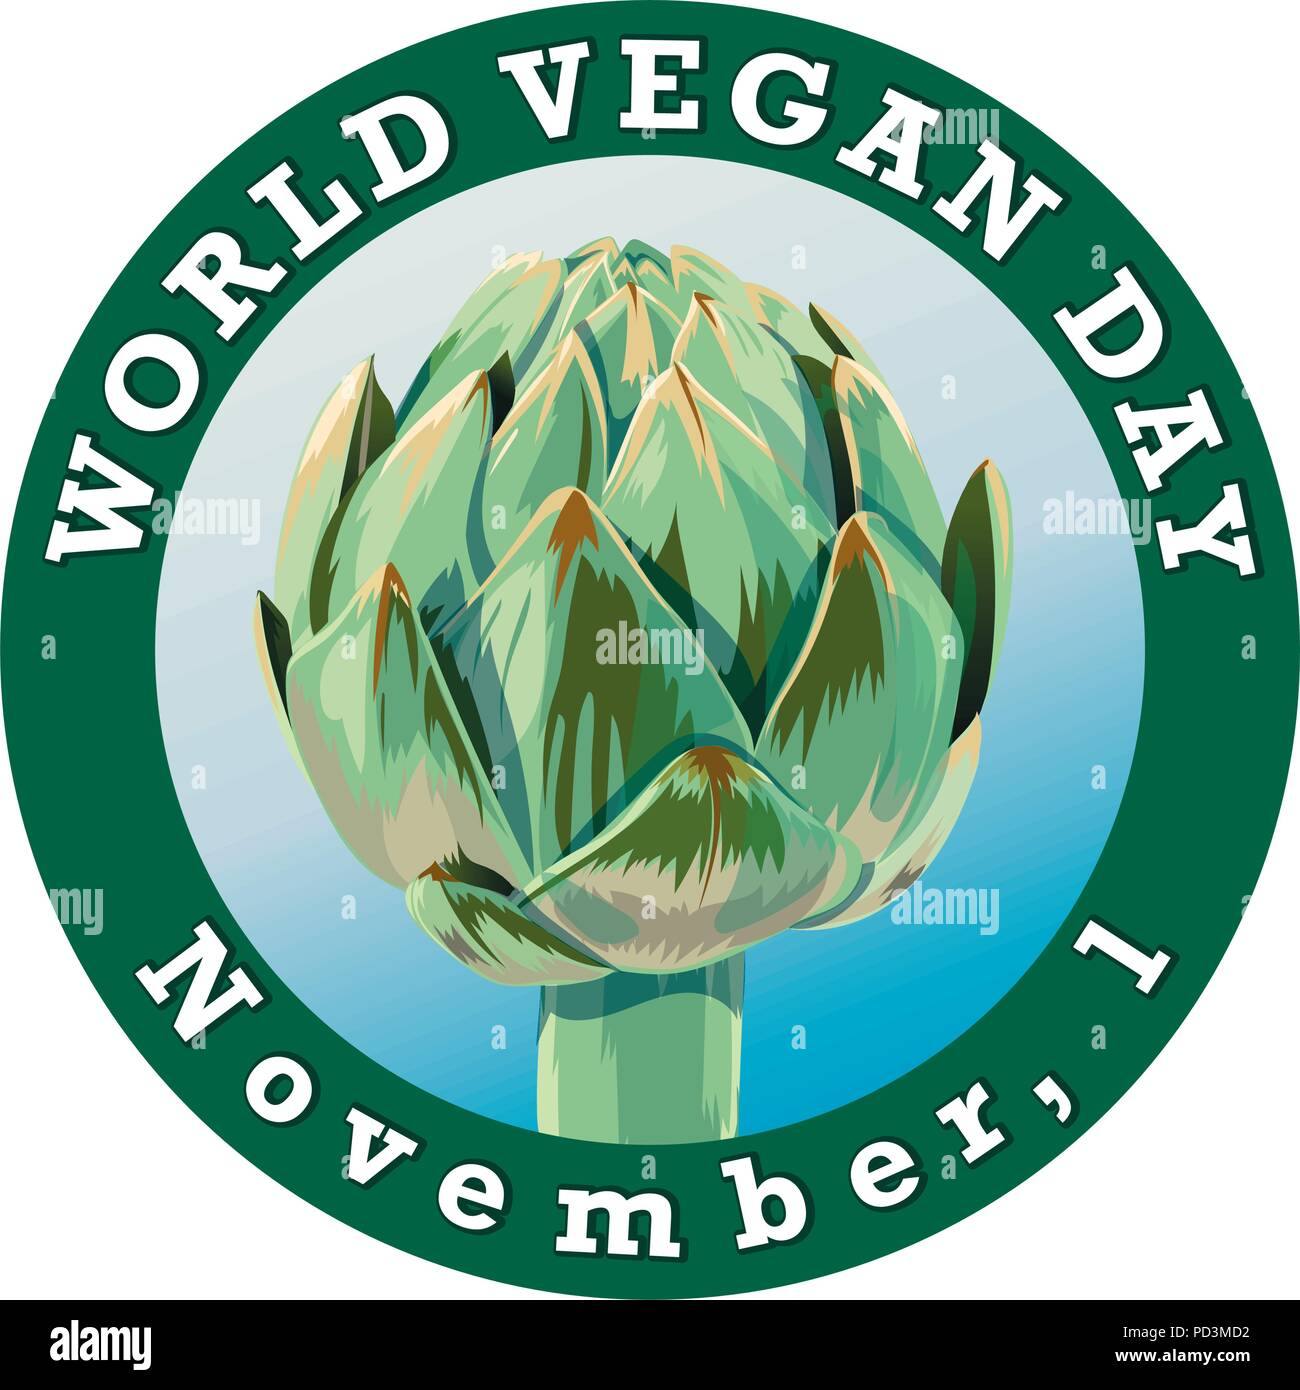 World vegan day. International november holiday. Poster with artichoke. Vector Illustrationy for posters, web sites, cards, t shirts, party decor - Stock Image